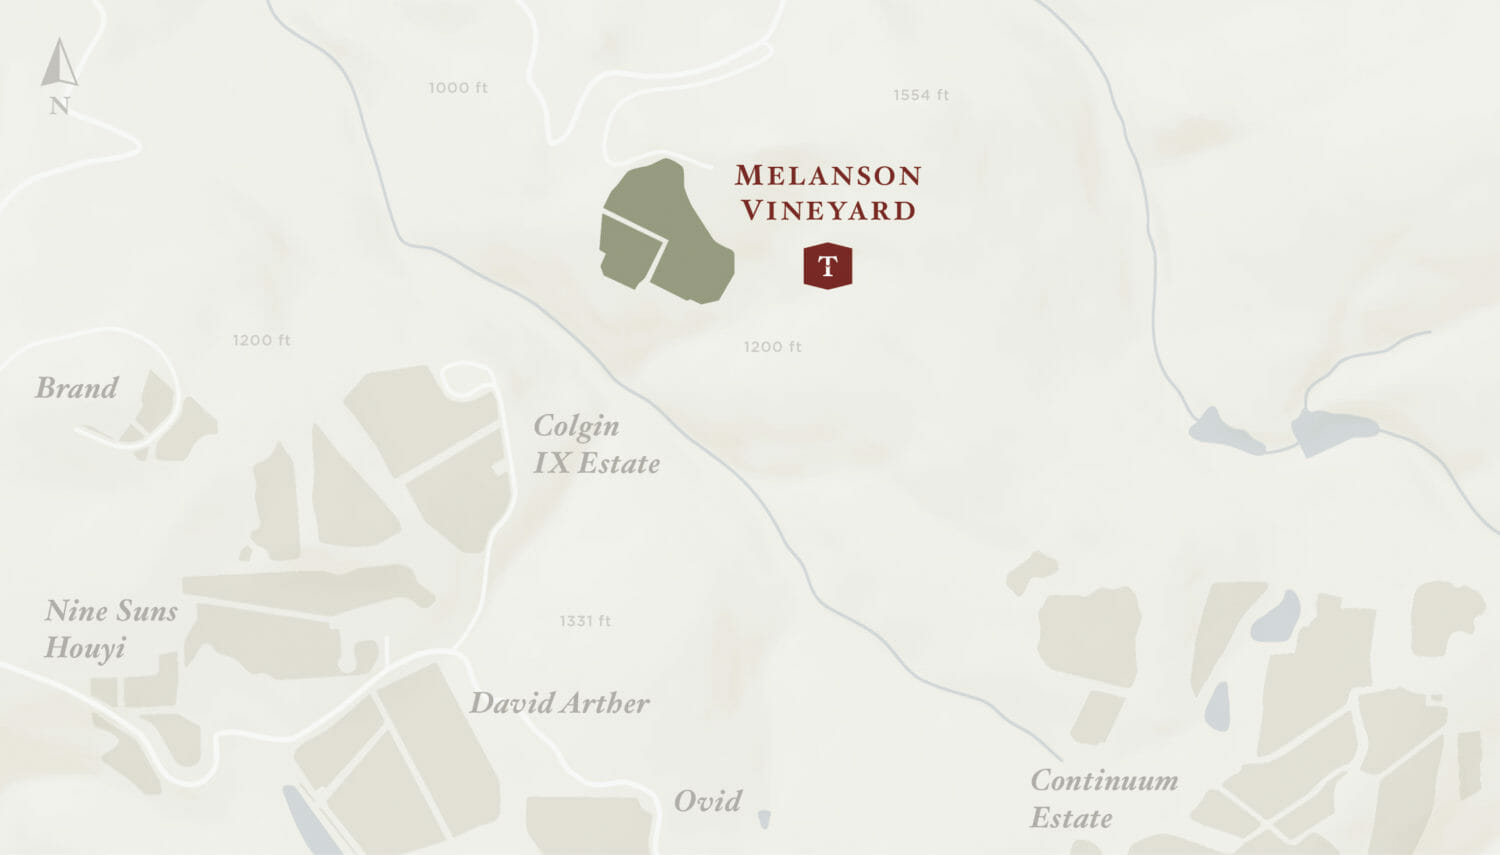 Melanson Vineyard Map